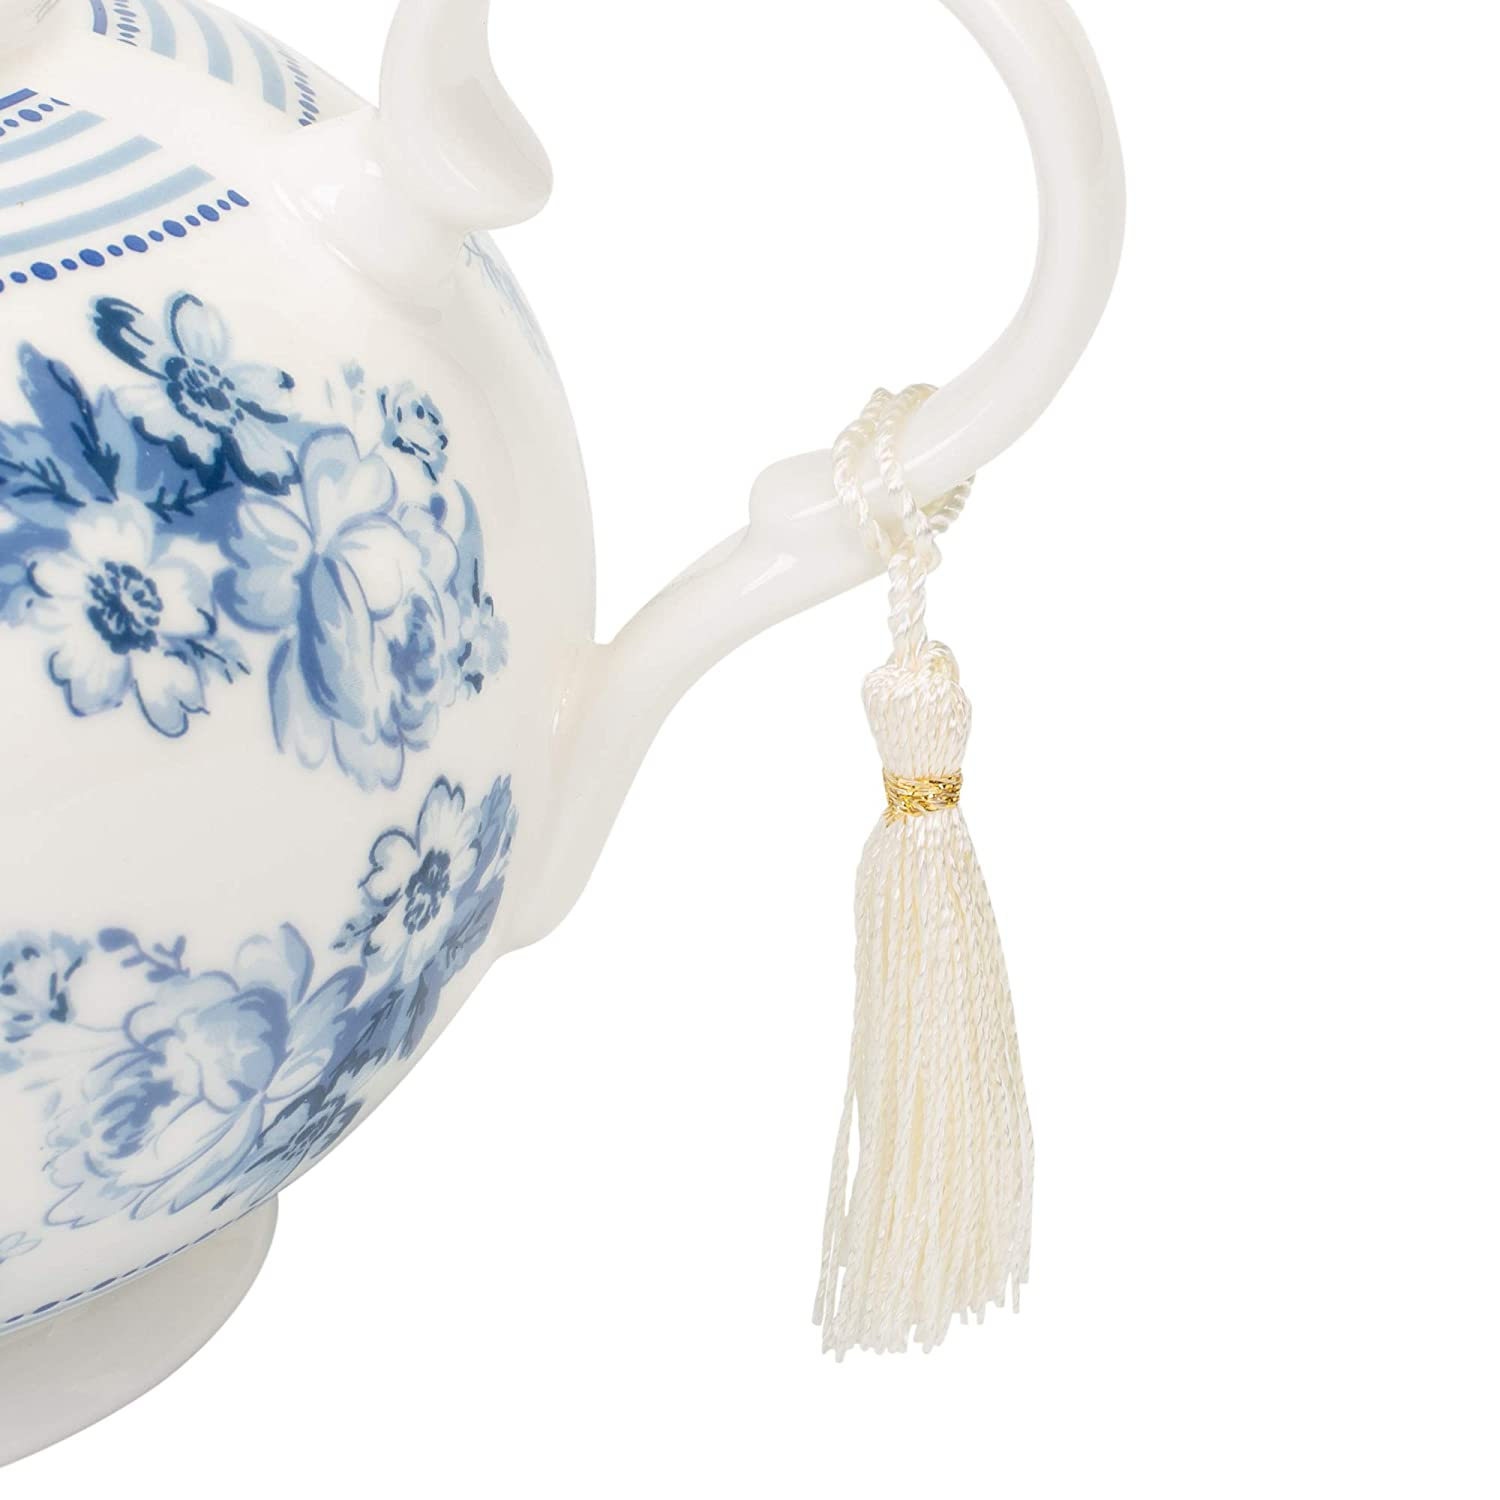 Delton Products English Blue 9.5 inches x 5.6 inches Porcelain Tea Pot in Gift Box Serveware